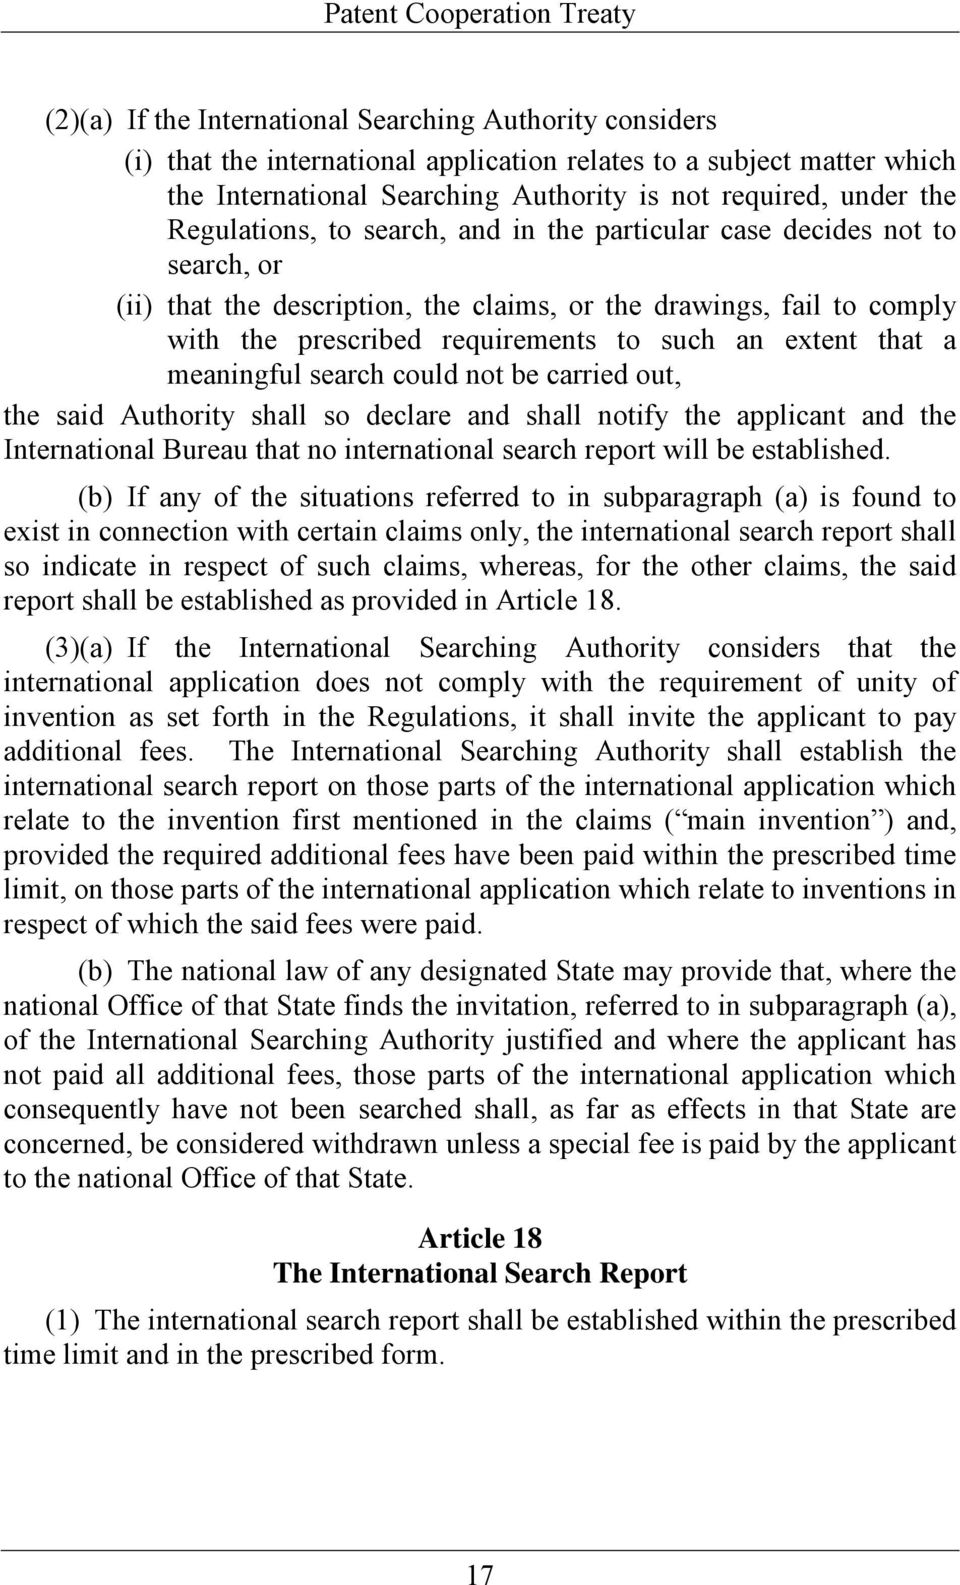 that a meaningful search could not be carried out, the said Authority shall so declare and shall notify the applicant and the International Bureau that no international search report will be